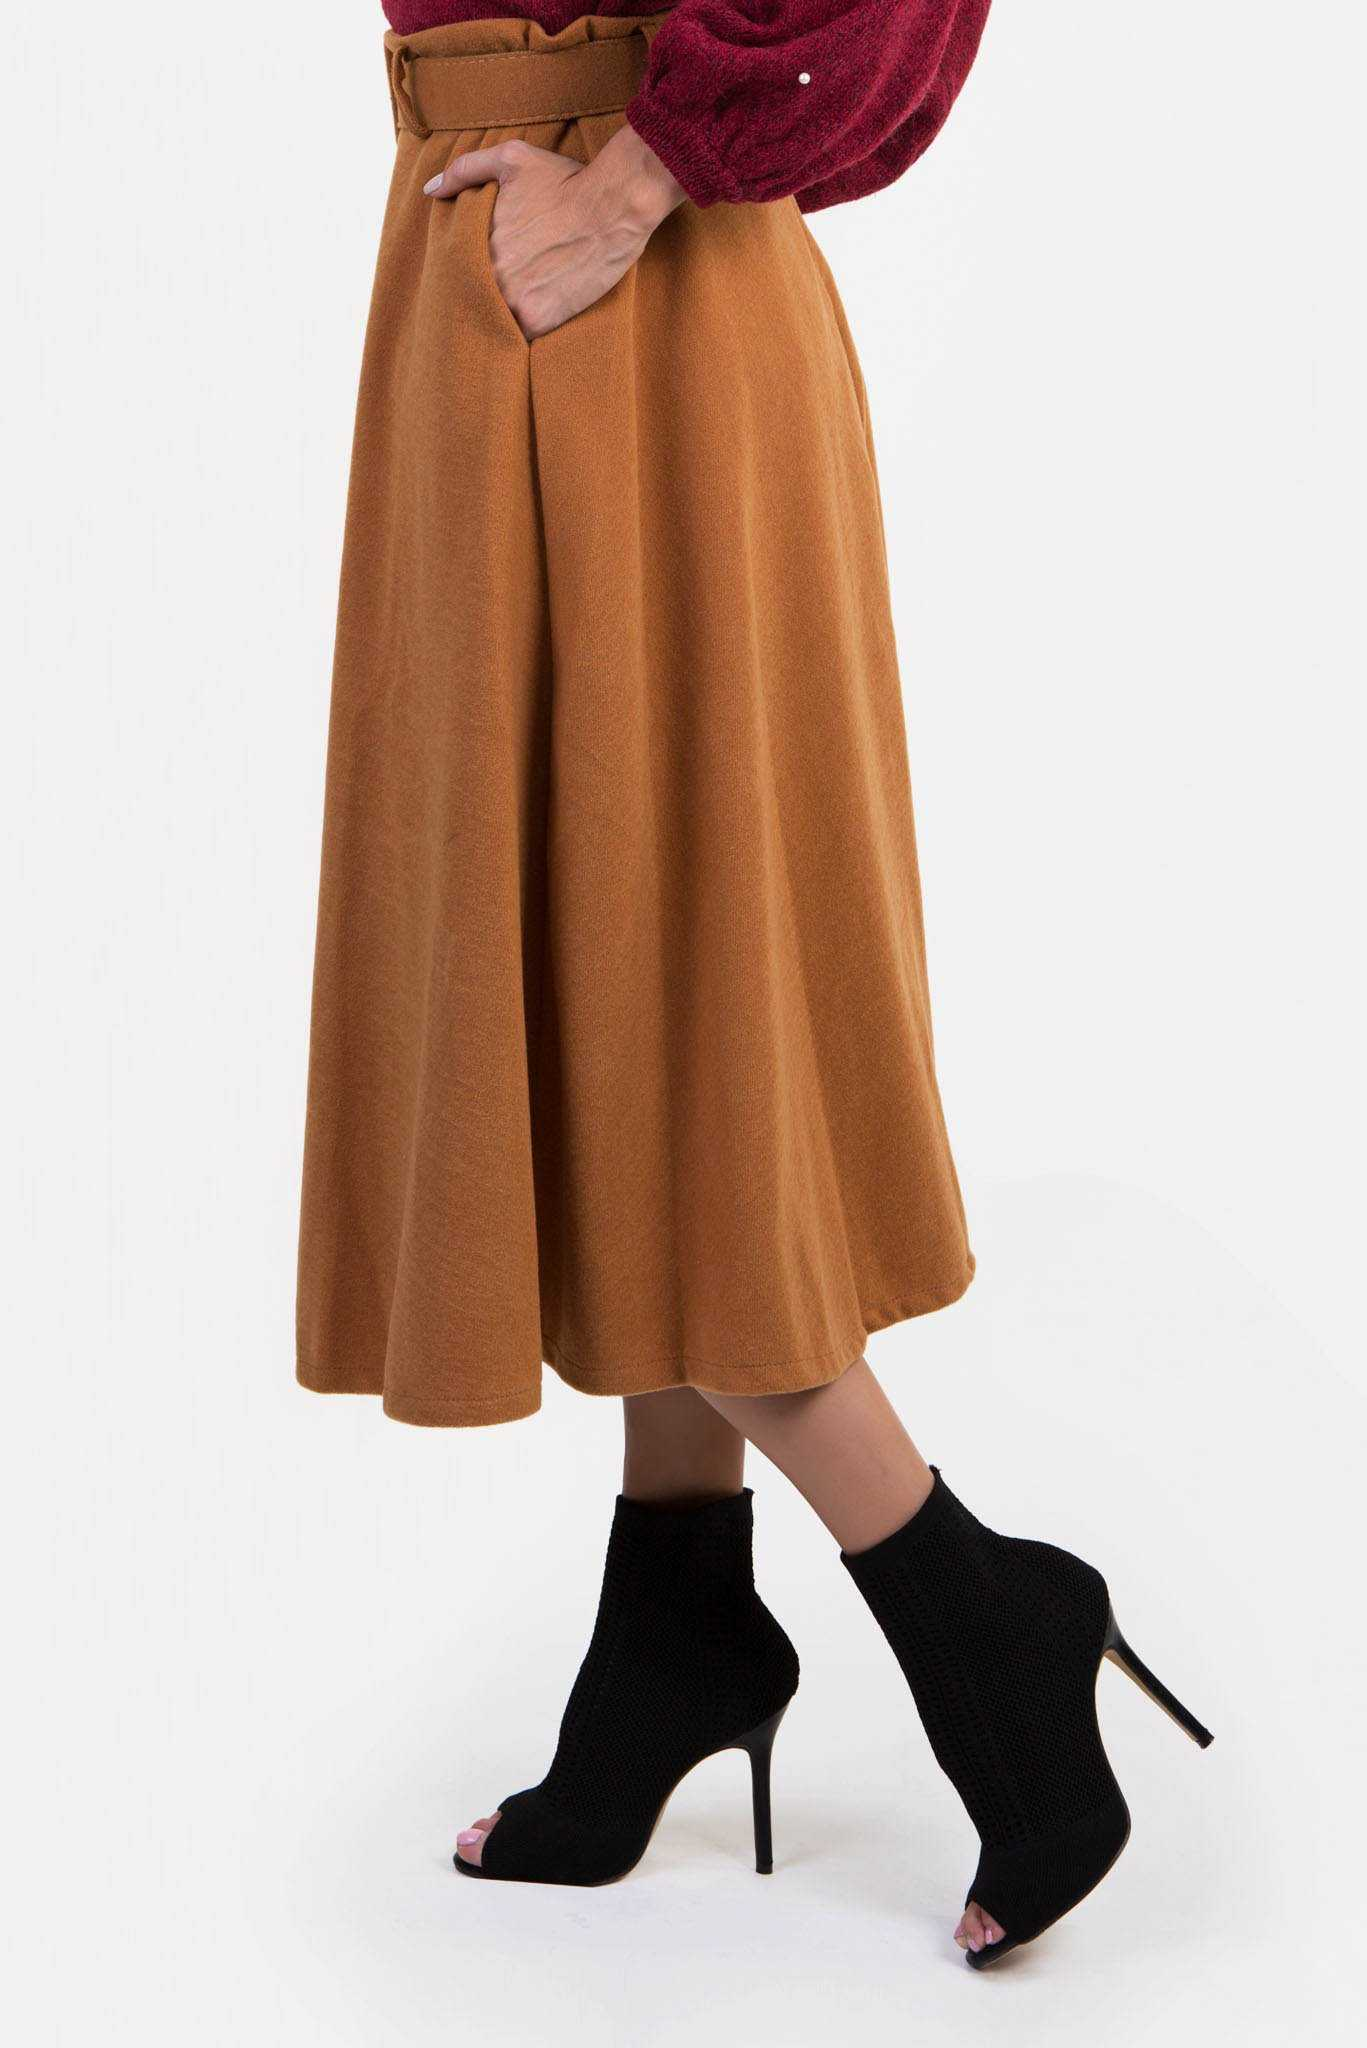 Winter Skirt - Brown | Raw Orange